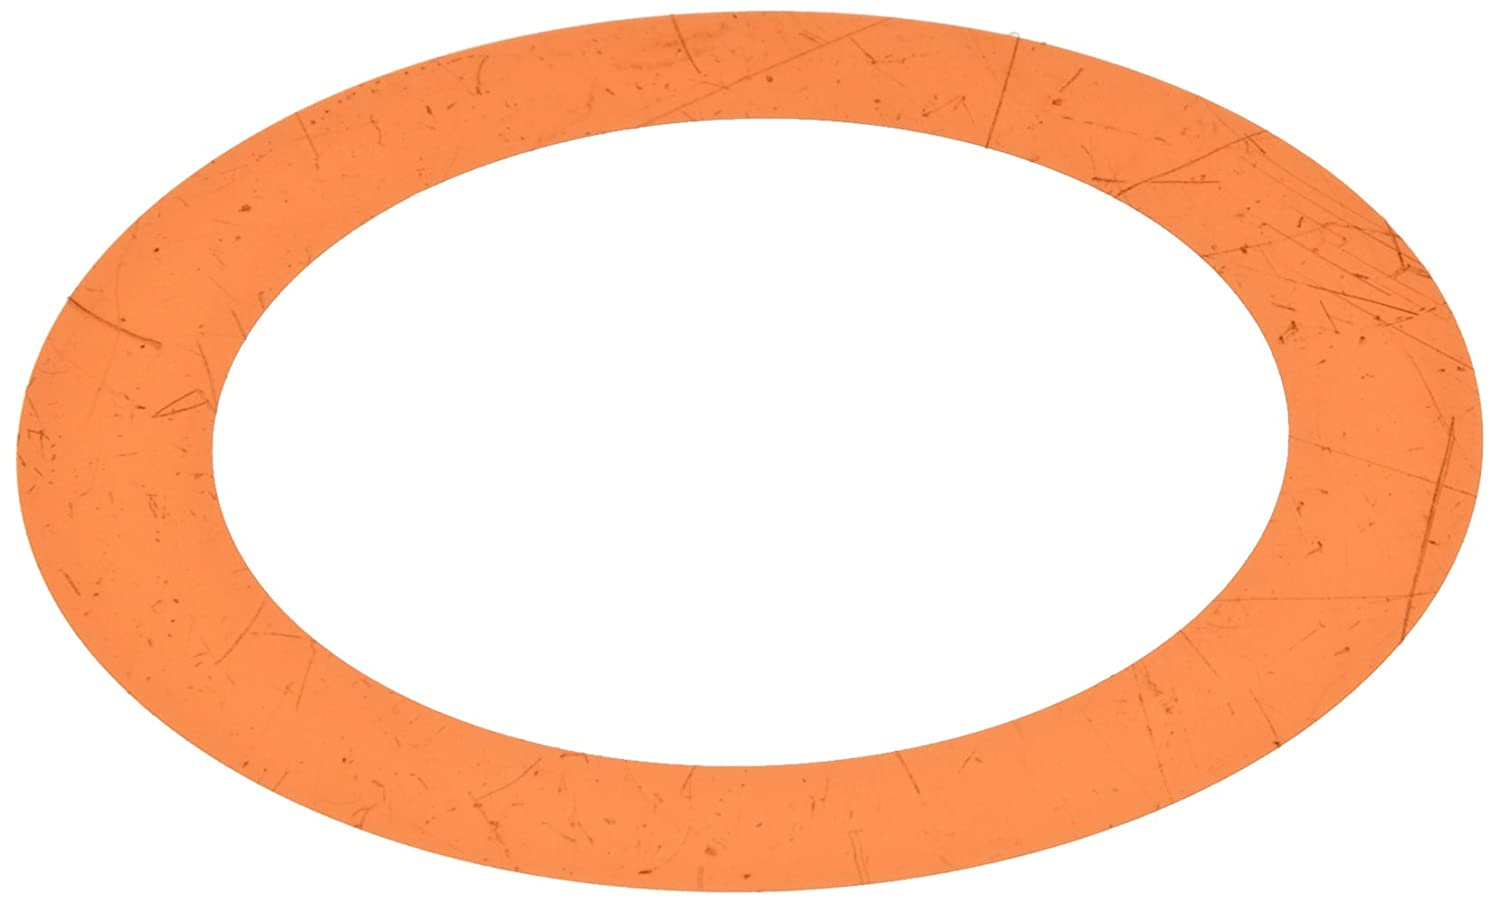 0.001 Thickness 1-3//4 ID Pack of 10 2-3//4 OD Polyester Round Shim Amber Precision Brand Products Inc. Pack of 10 0.001 Thickness 1-3//4 ID 2-3//4 OD